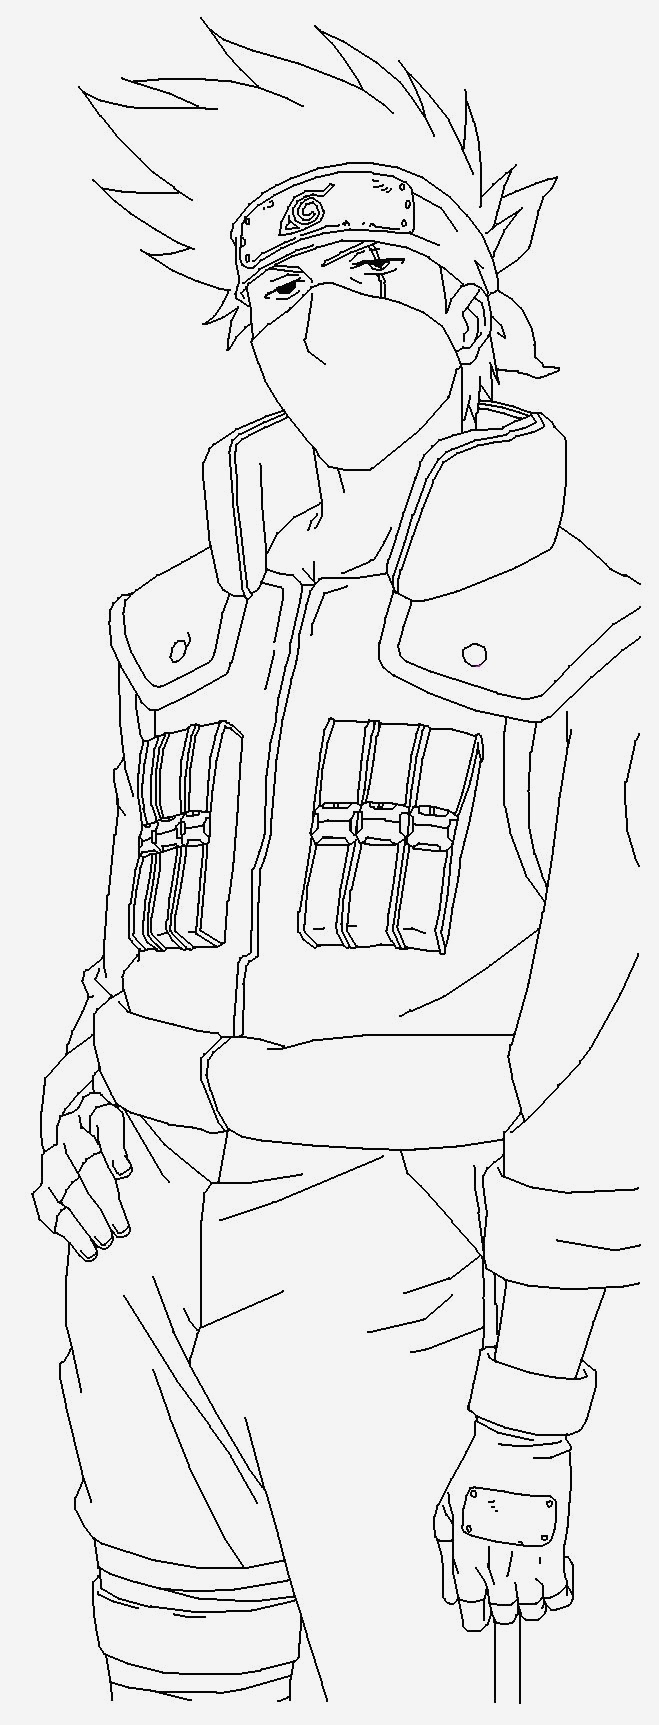 Coloriage Naruto Et Kakashi Lovely Kakashi Hatake Blank by Usagisailormoon20 On Deviantart Of Coloriage Naruto Et Kakashi